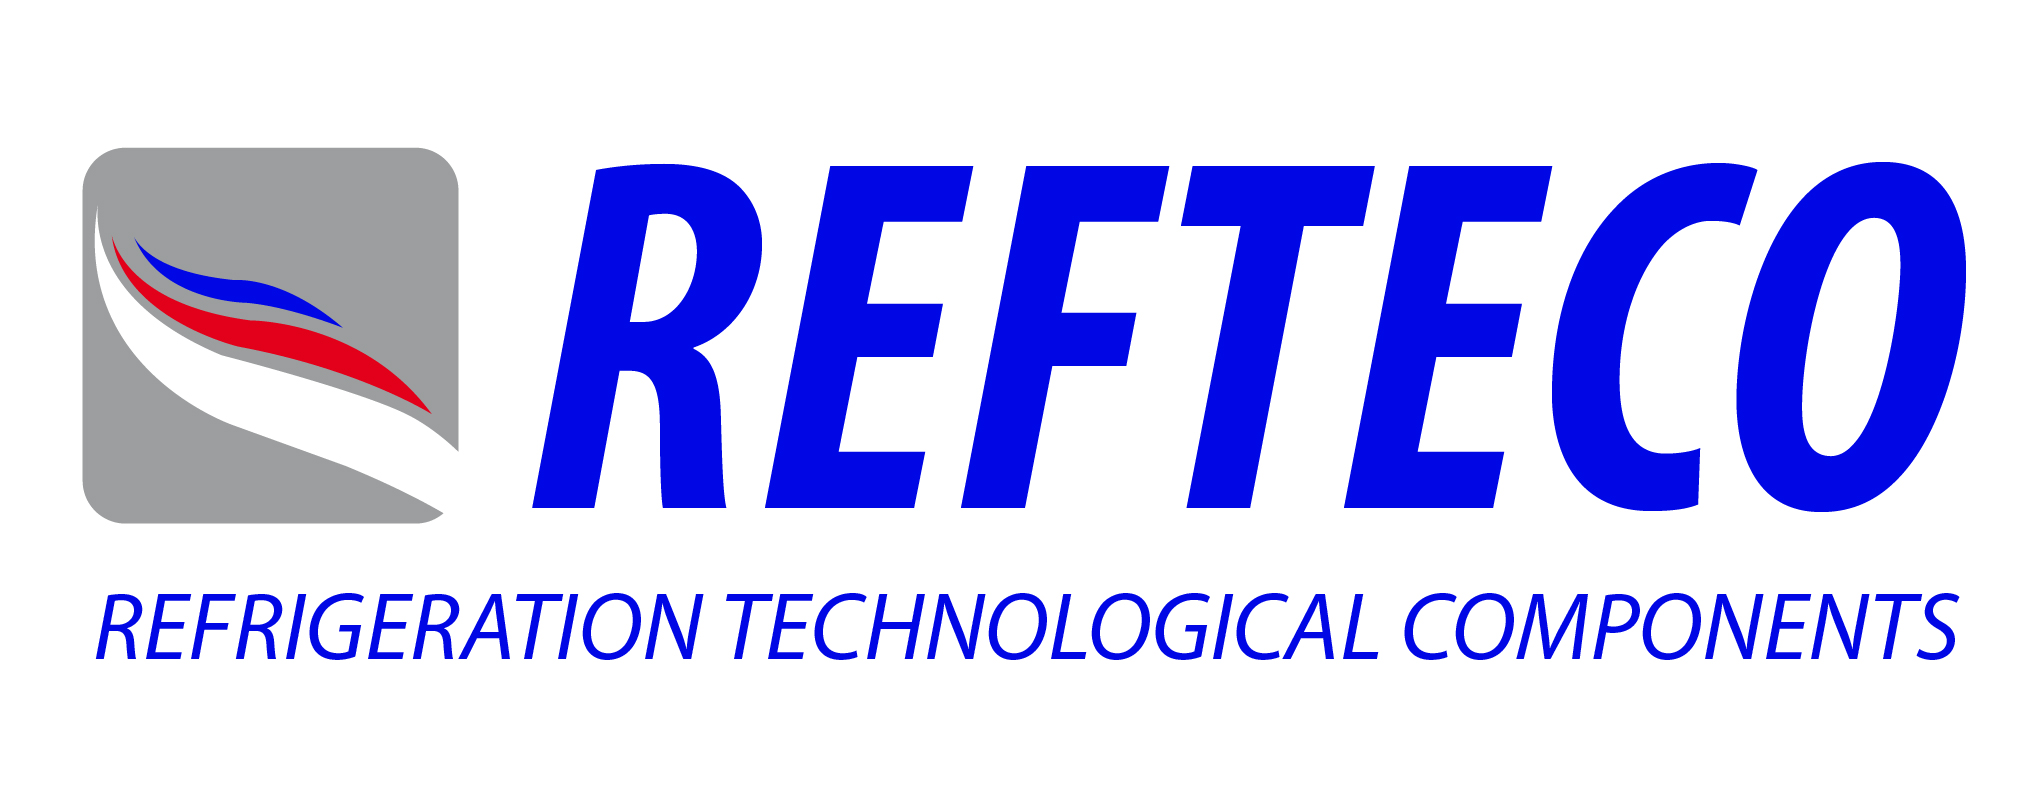 Refteco - Refrigeration Technological Components